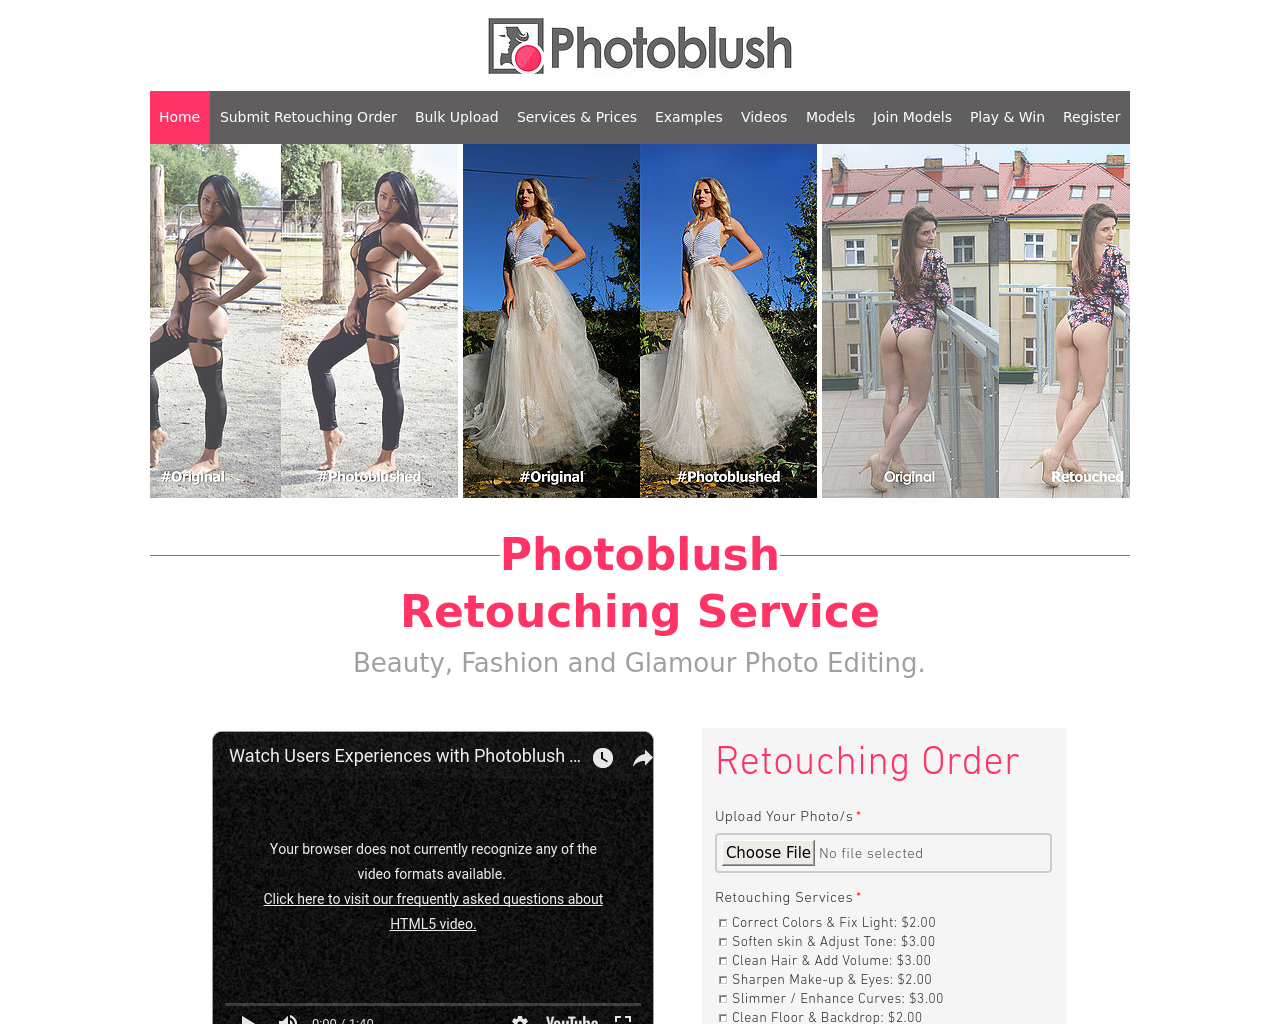 PhotoBlush-Retouching-Service-Advertising-Reviews-Pricing